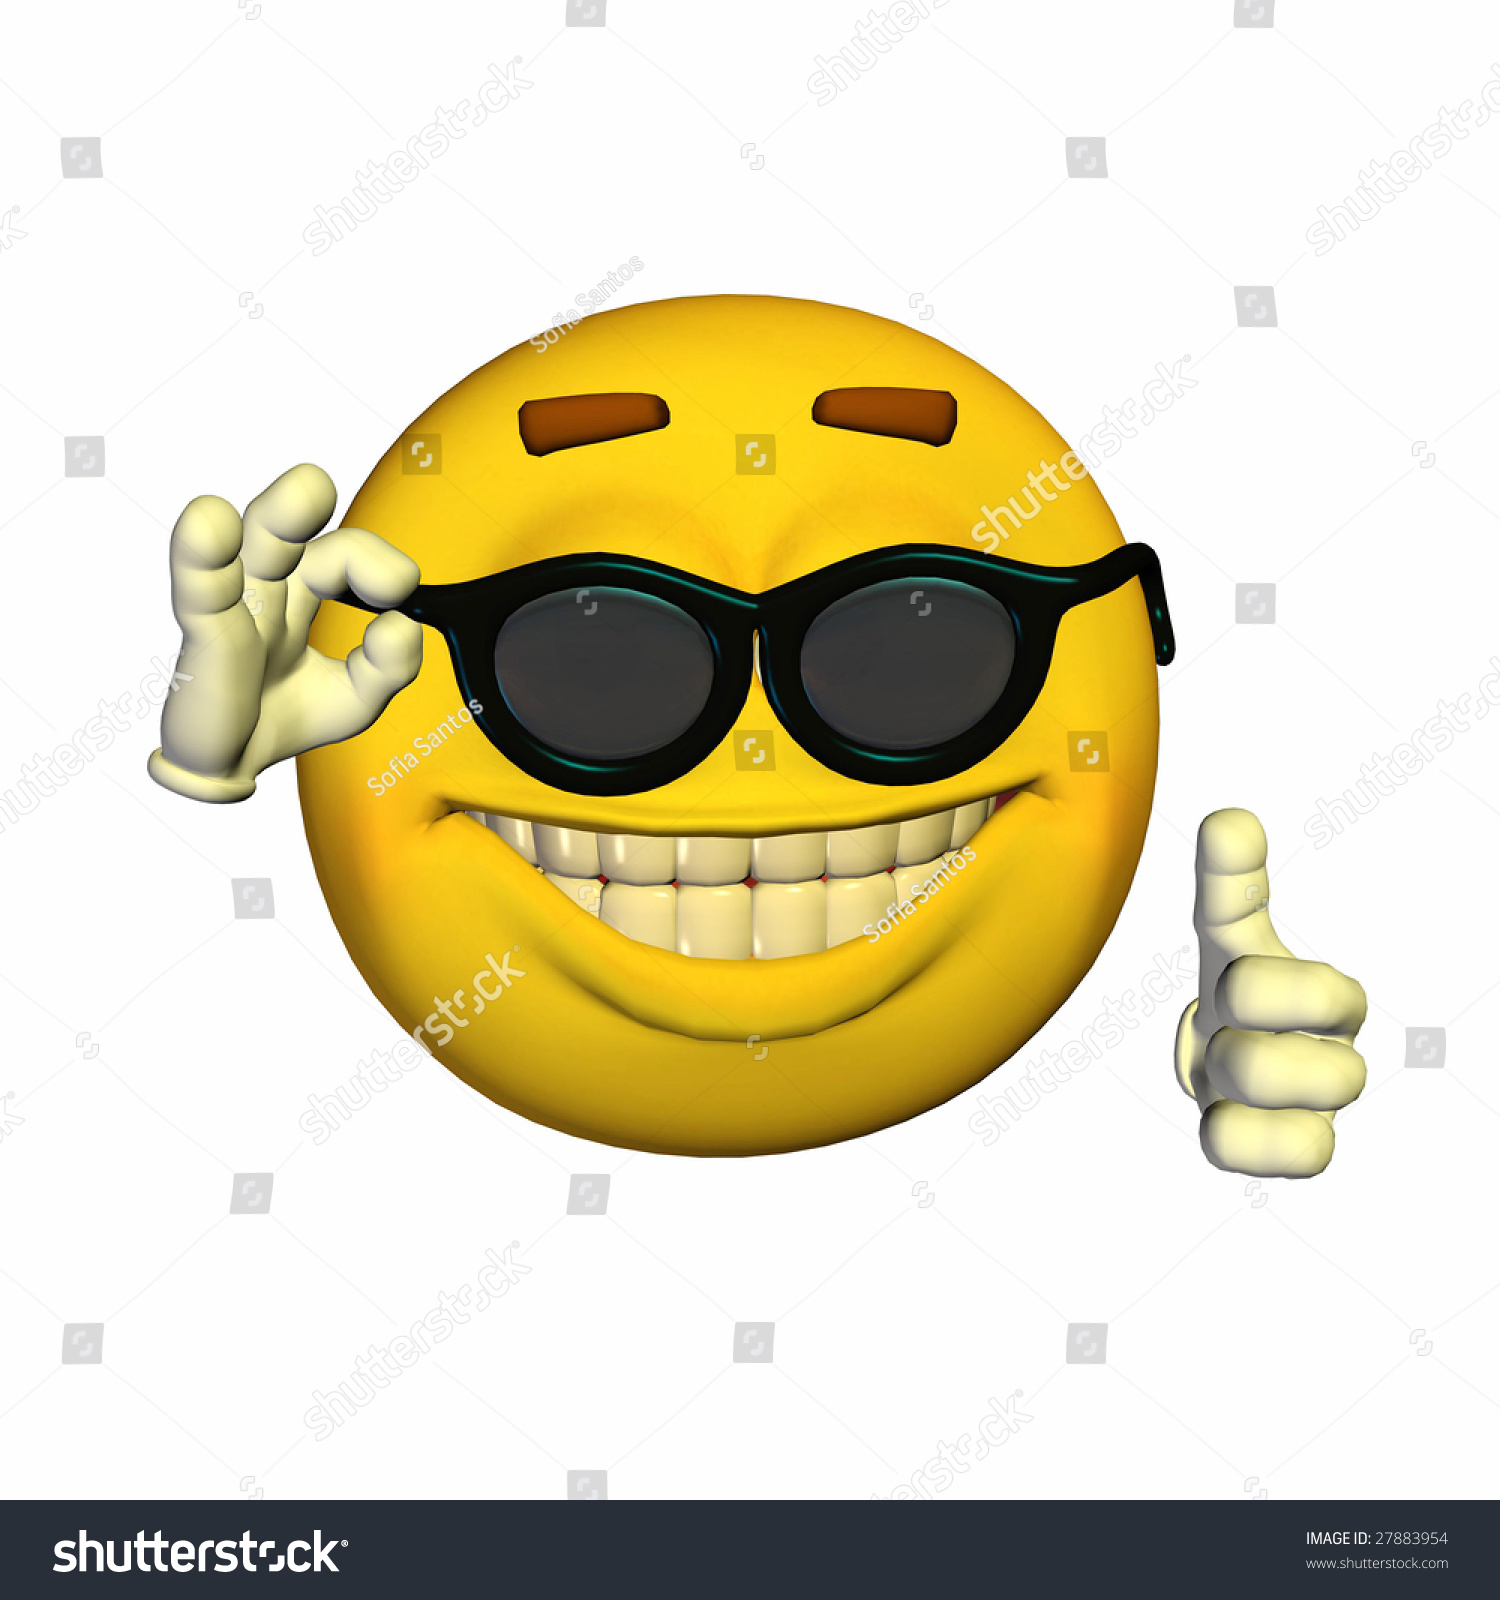 Cool Yellow Emoticon Guy Dark Glasses Stock Illustration ...